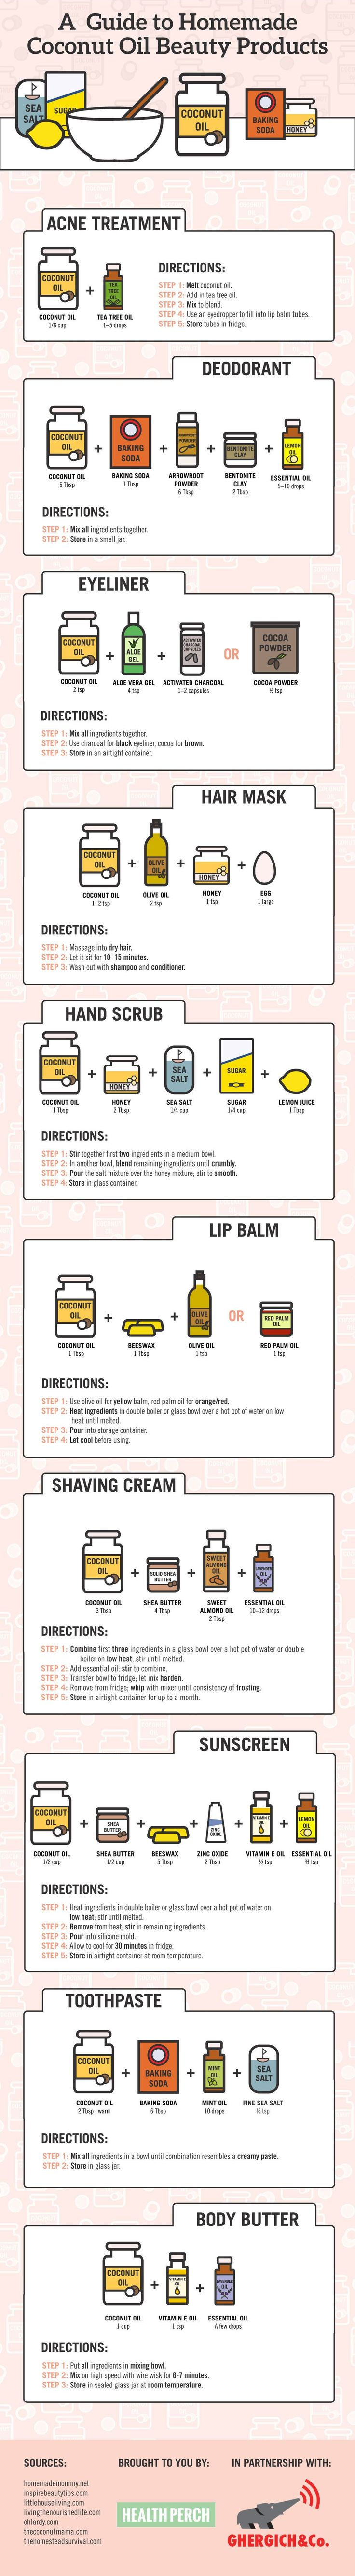 A Guide to Homemade Coconut Oil Beauty Products!